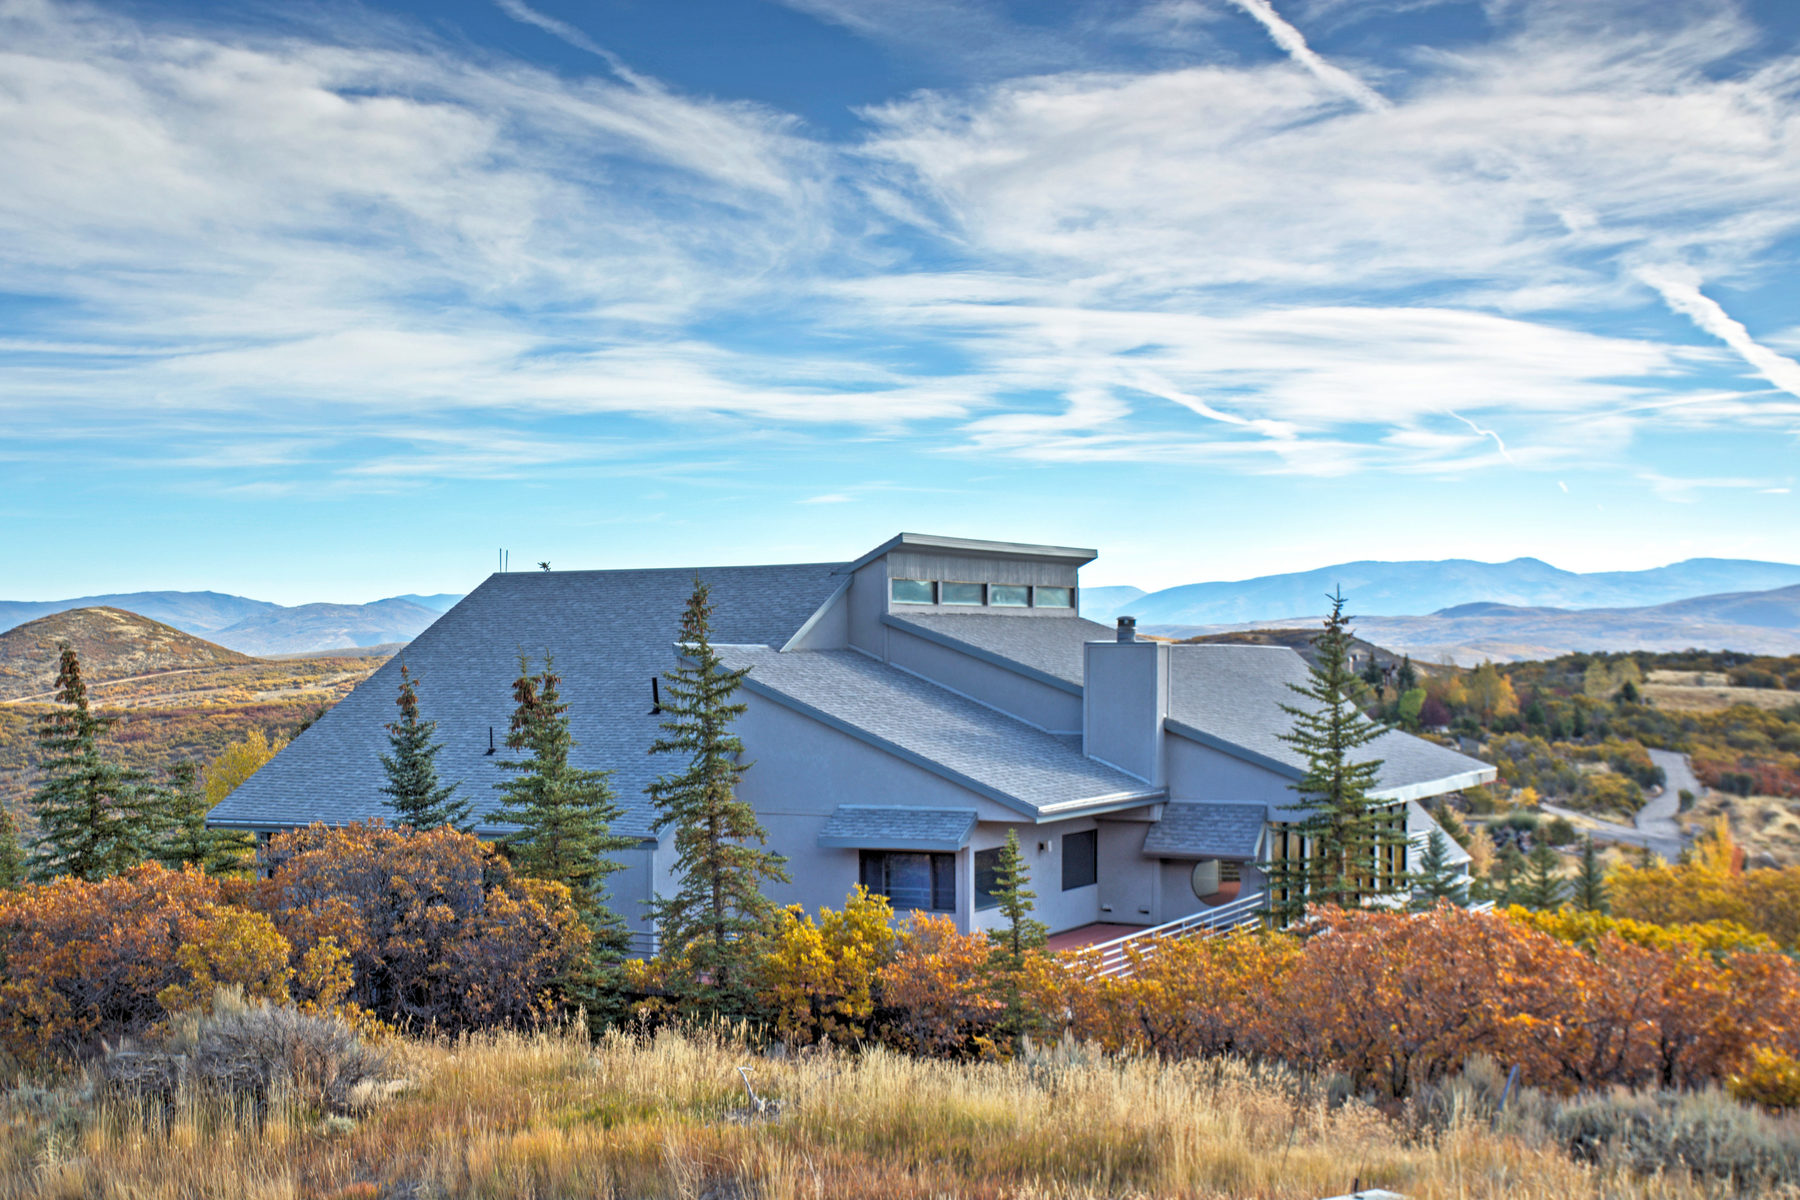 Casa Unifamiliar por un Venta en This Mountaintop Gem is the Perfect Personal or Corporate Retreat 325 Mountain Top Dr Park City, Utah, 84060 Estados Unidos